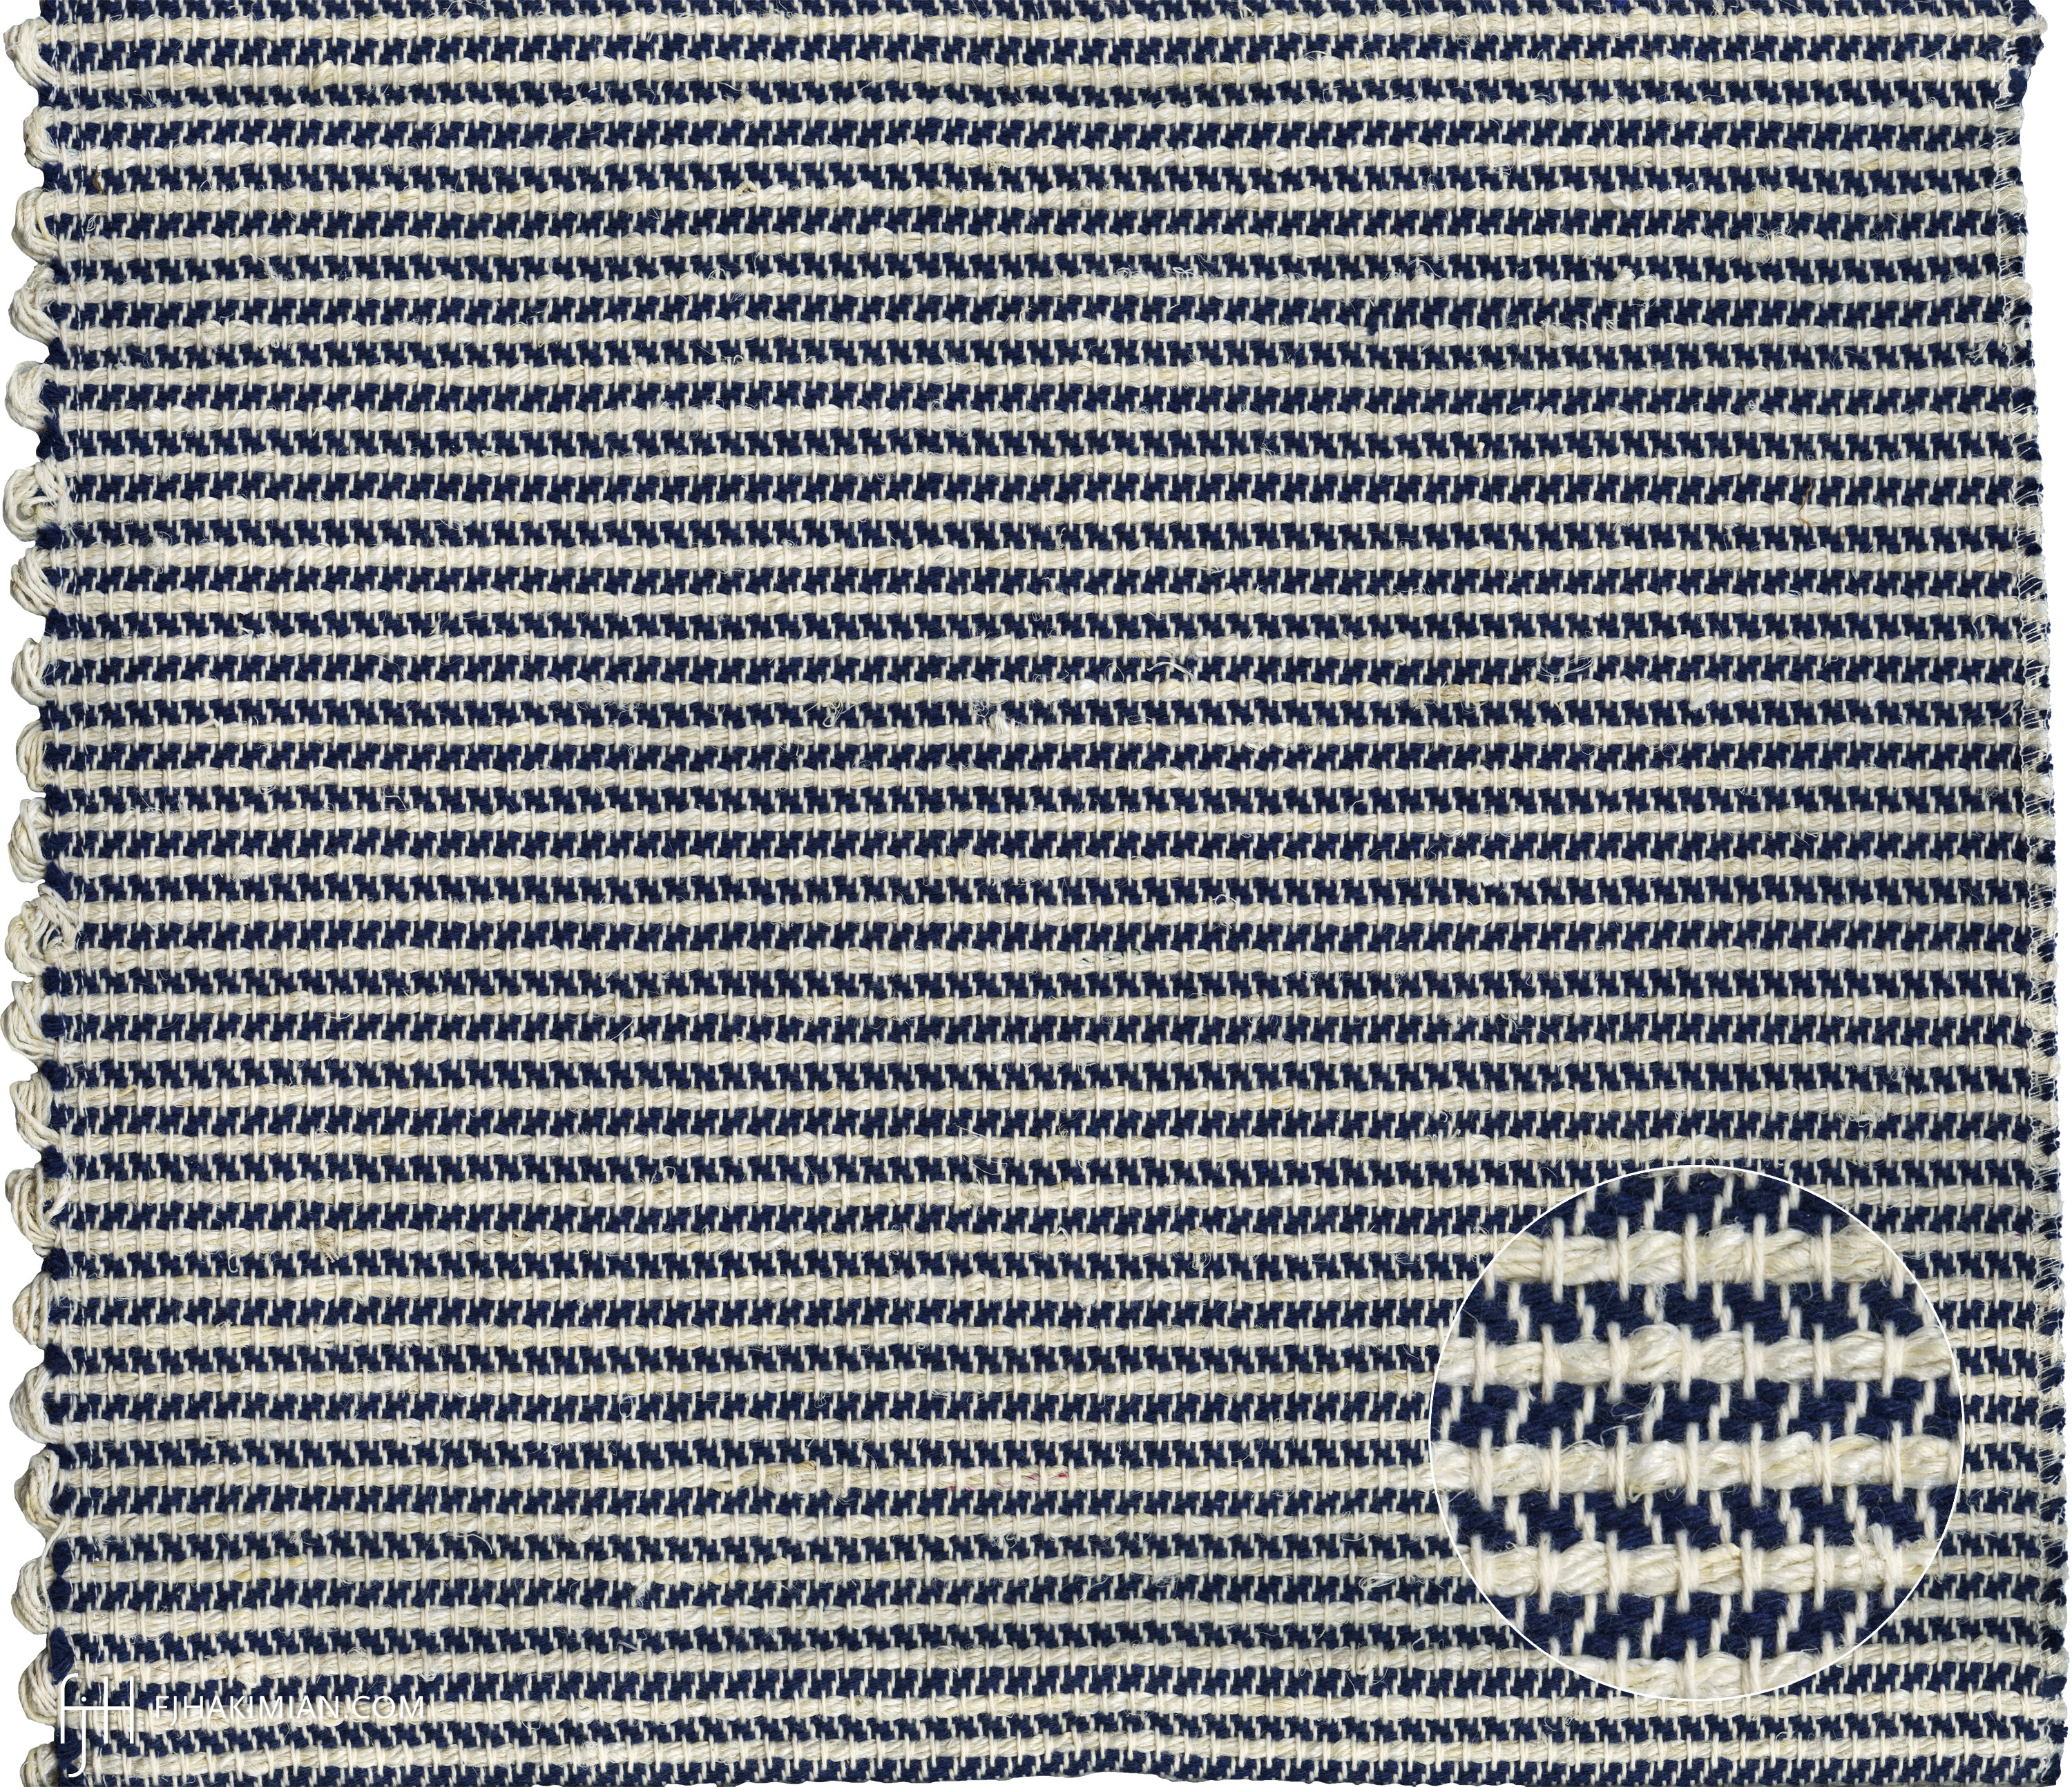 IF-Sardinian-Cotton-Bleached Hemp-Mat Sample 2-FJ Hakimian